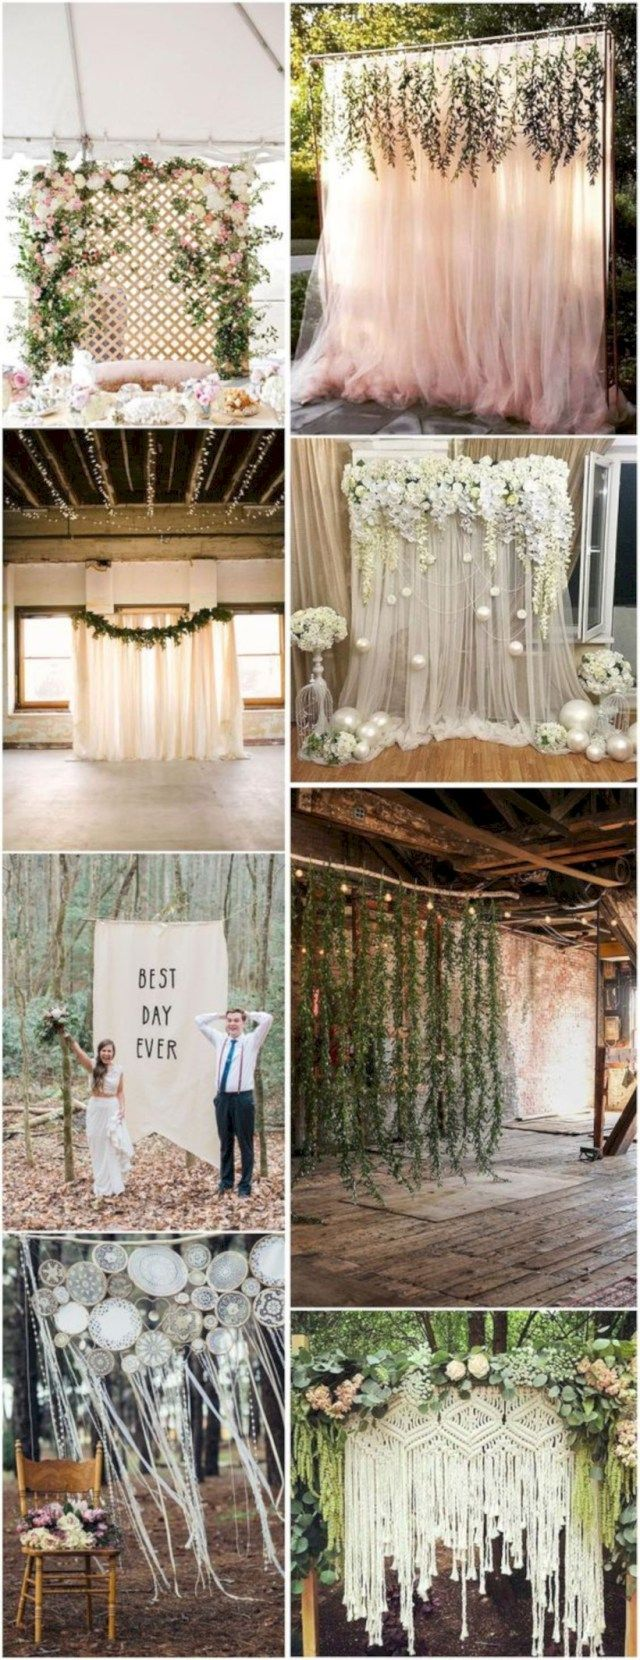 Garden wedding decoration ideas   Genius Outdoor Wedding Decoration Ideas  Outdoor wedding